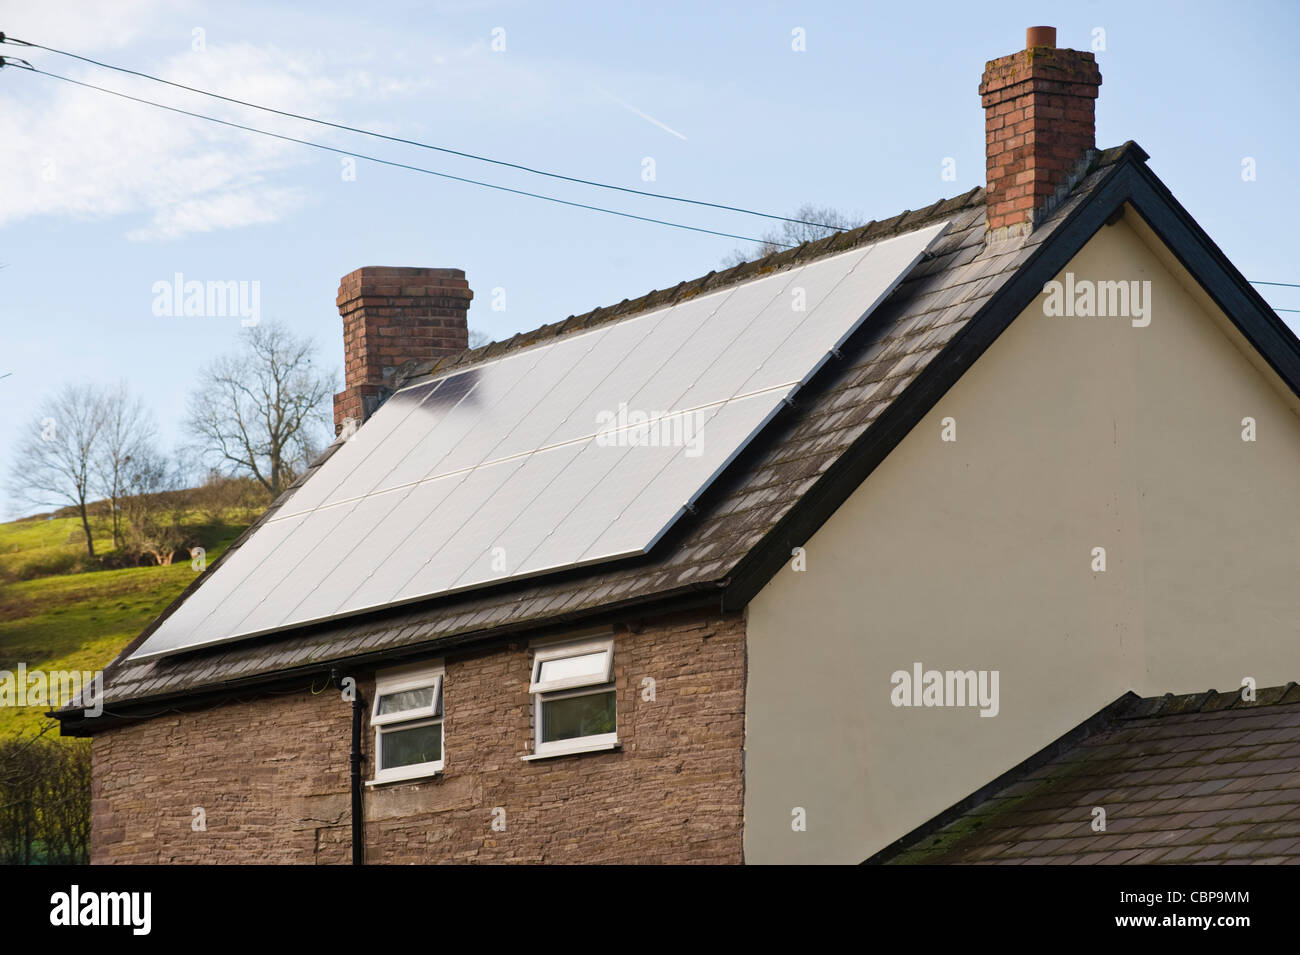 Solar panels for electricity generation on roof of rural detached house at St Margarets Herefordshire England UK - Stock Image